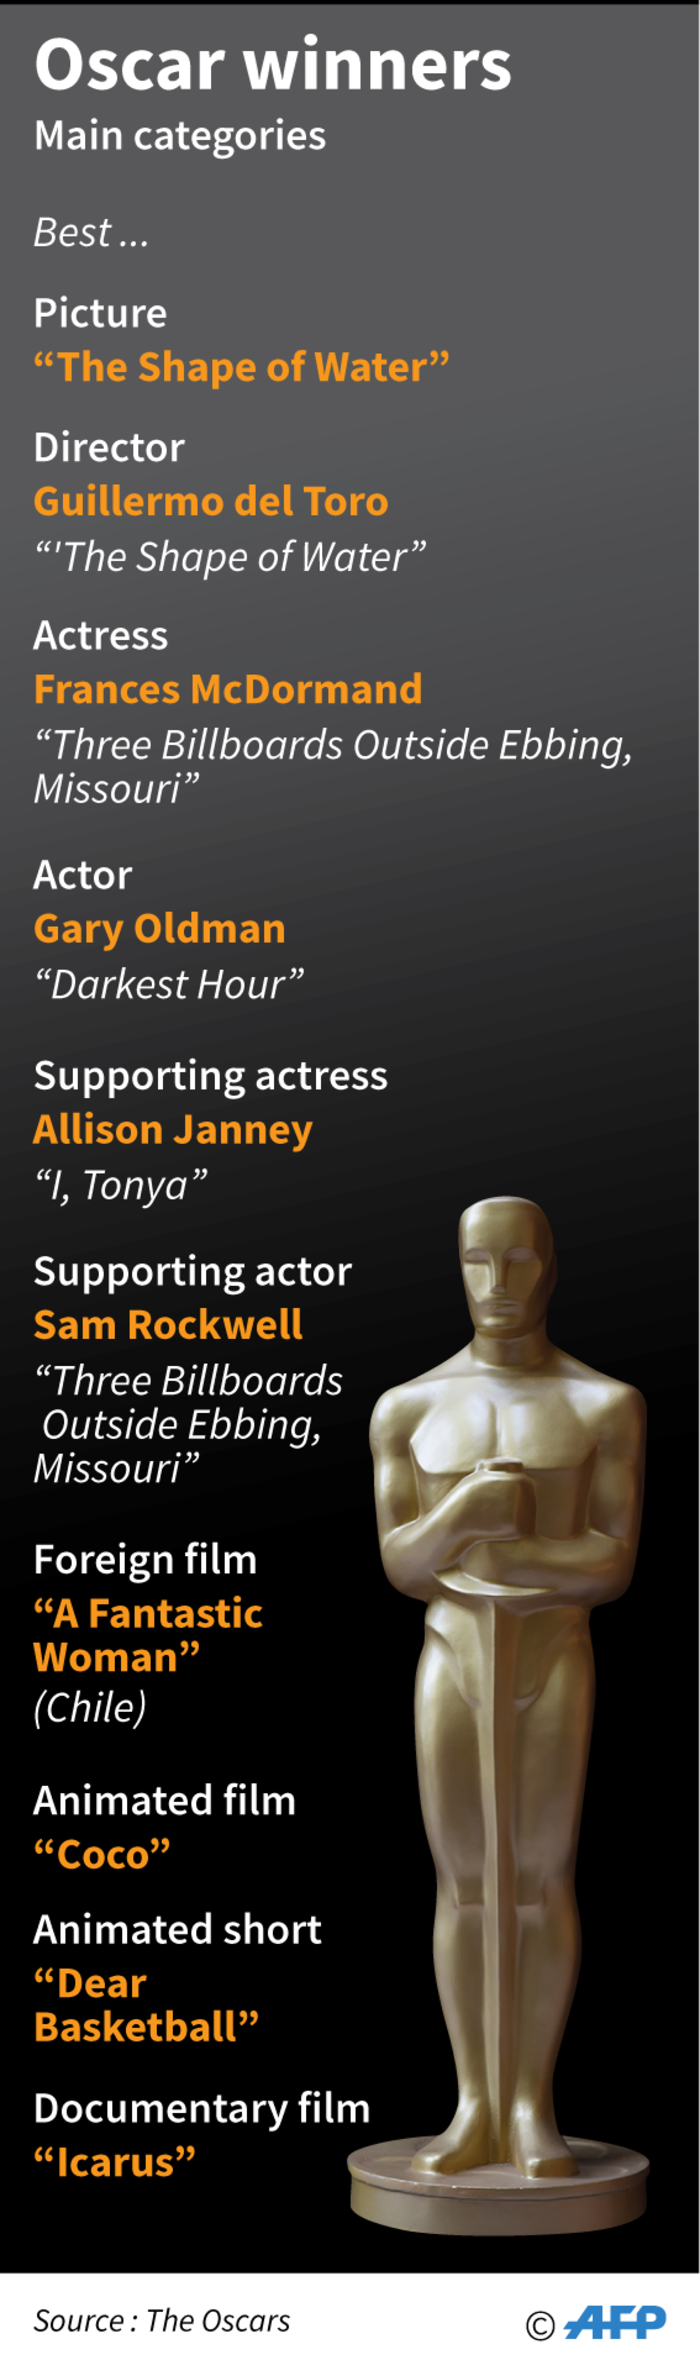 The winners in the main categories in the 2018 Academy Awards. Picture: AFP